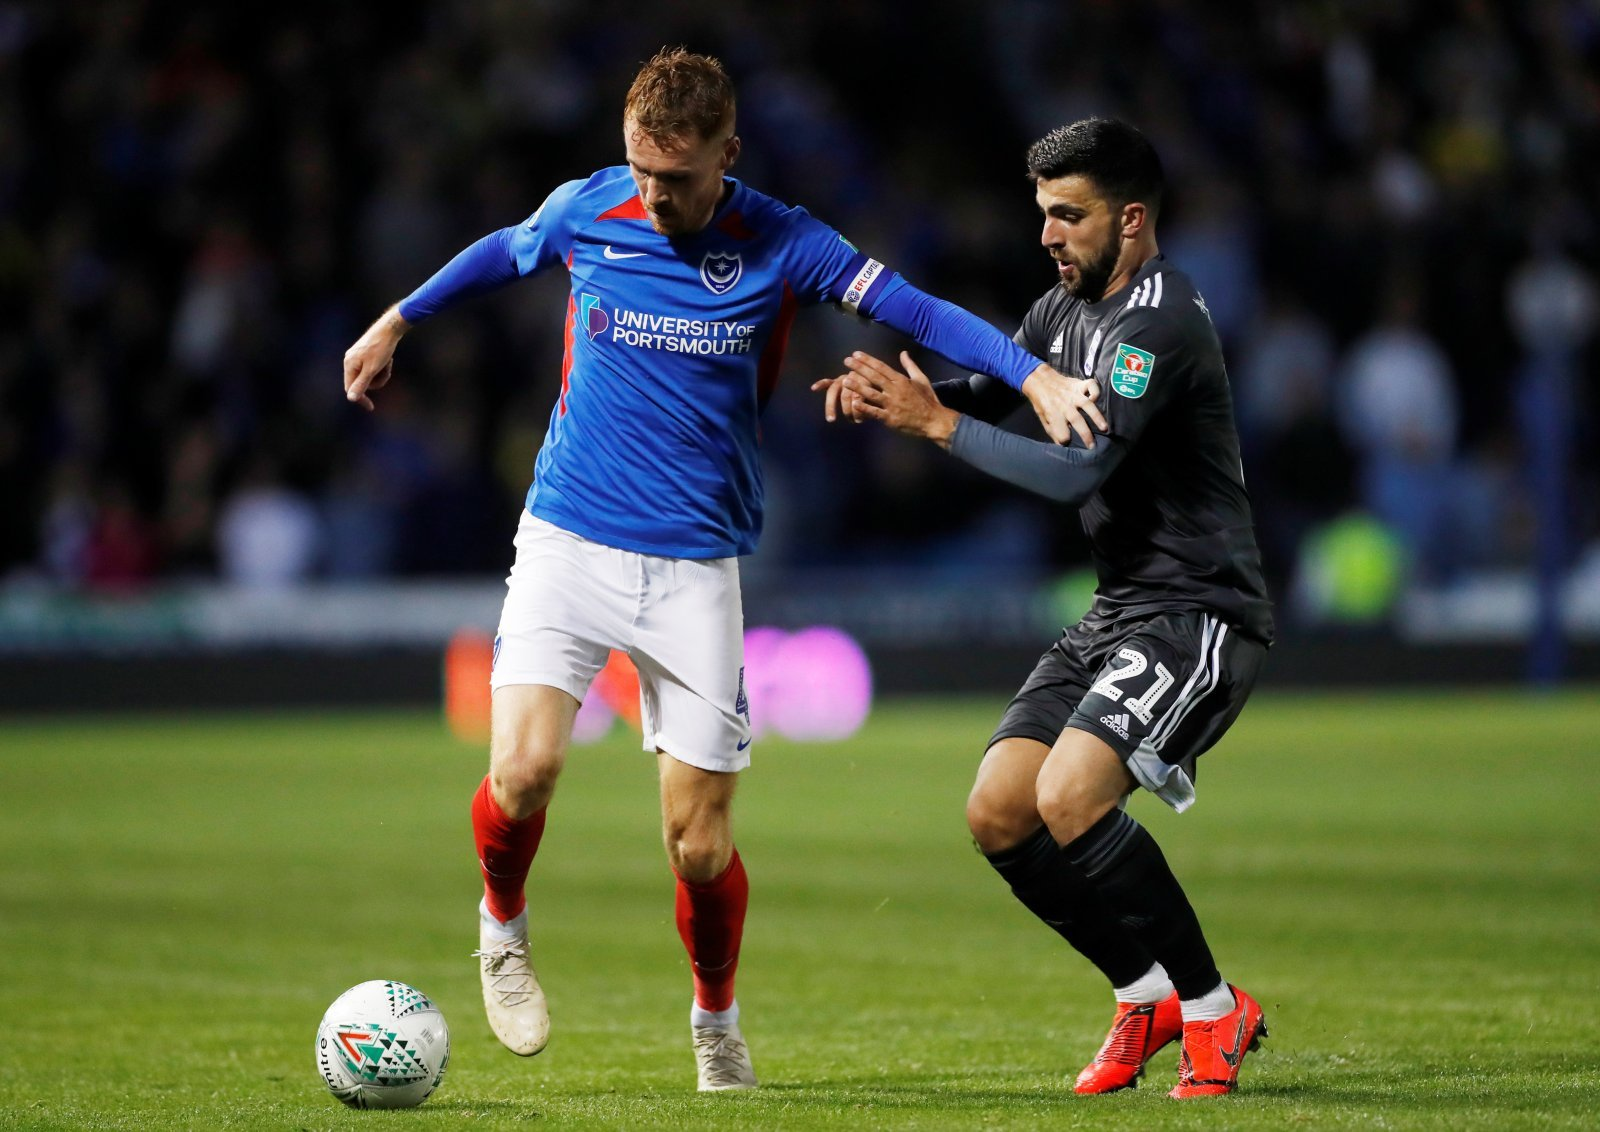 Portsmouth: Tom Naylor was the Unsung Hero against Gillingham